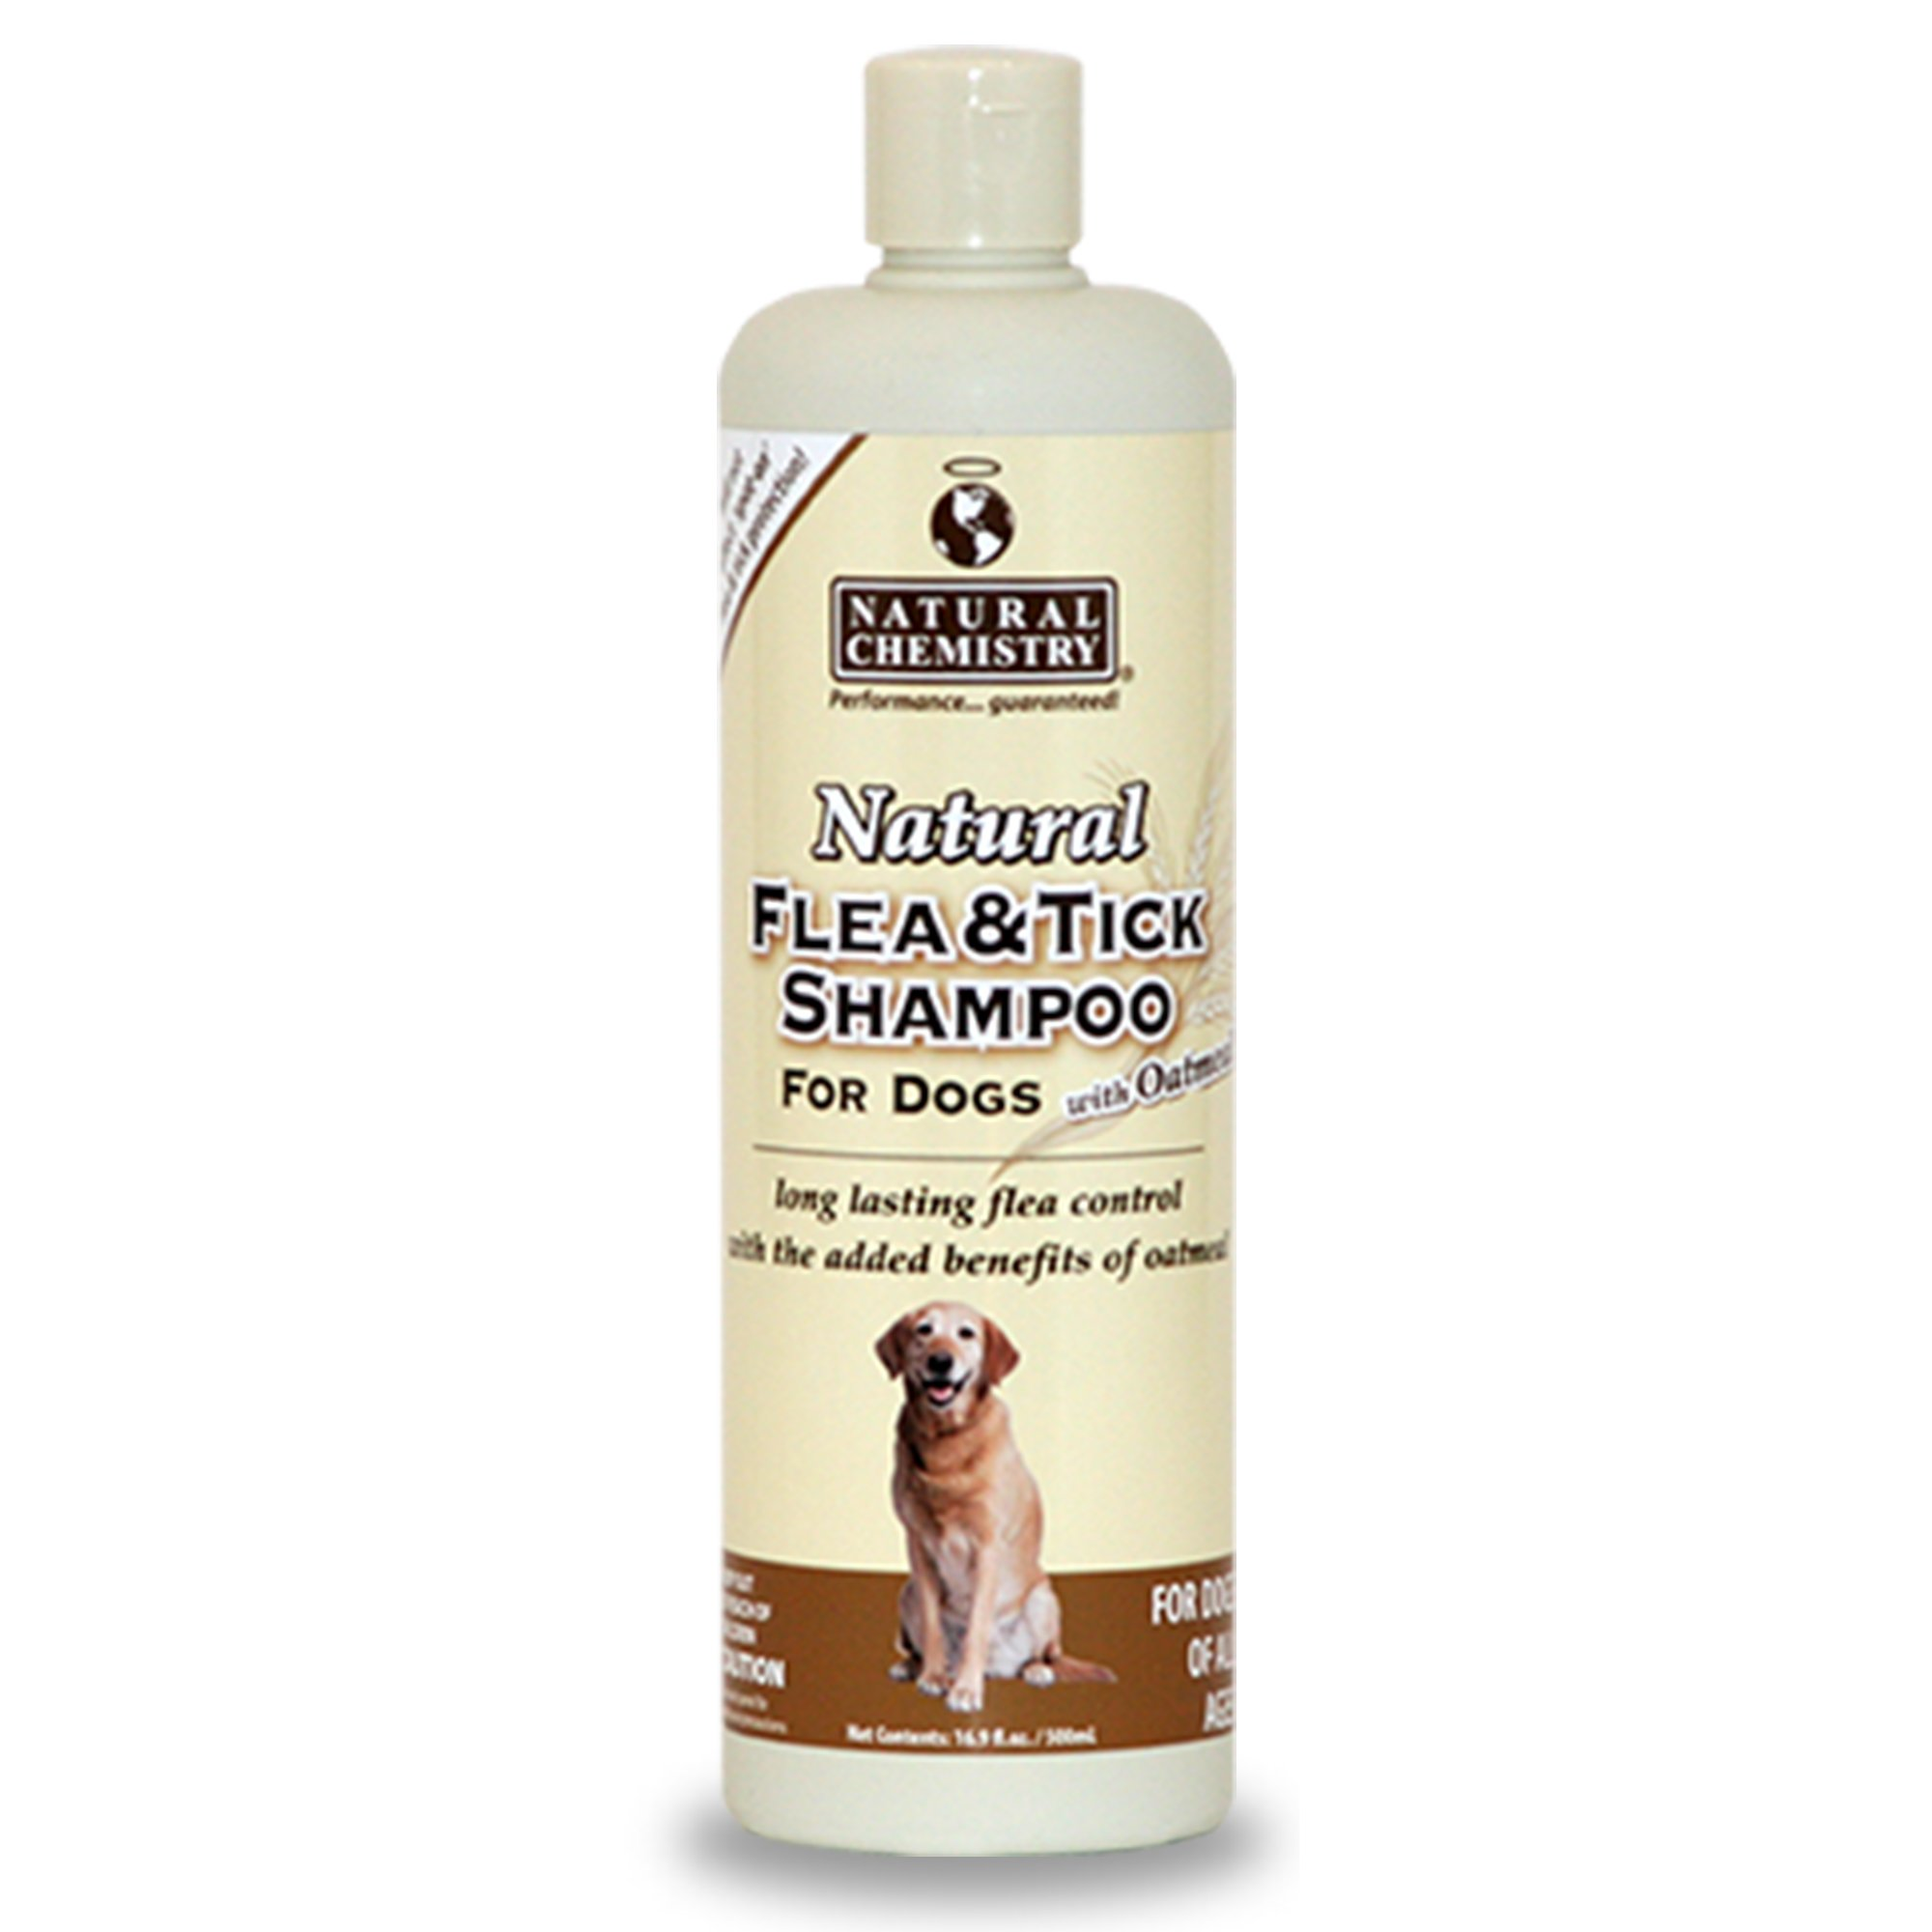 Natural Chemistry Natural Flea Tick Shampoo With Oatmeal For Dogs